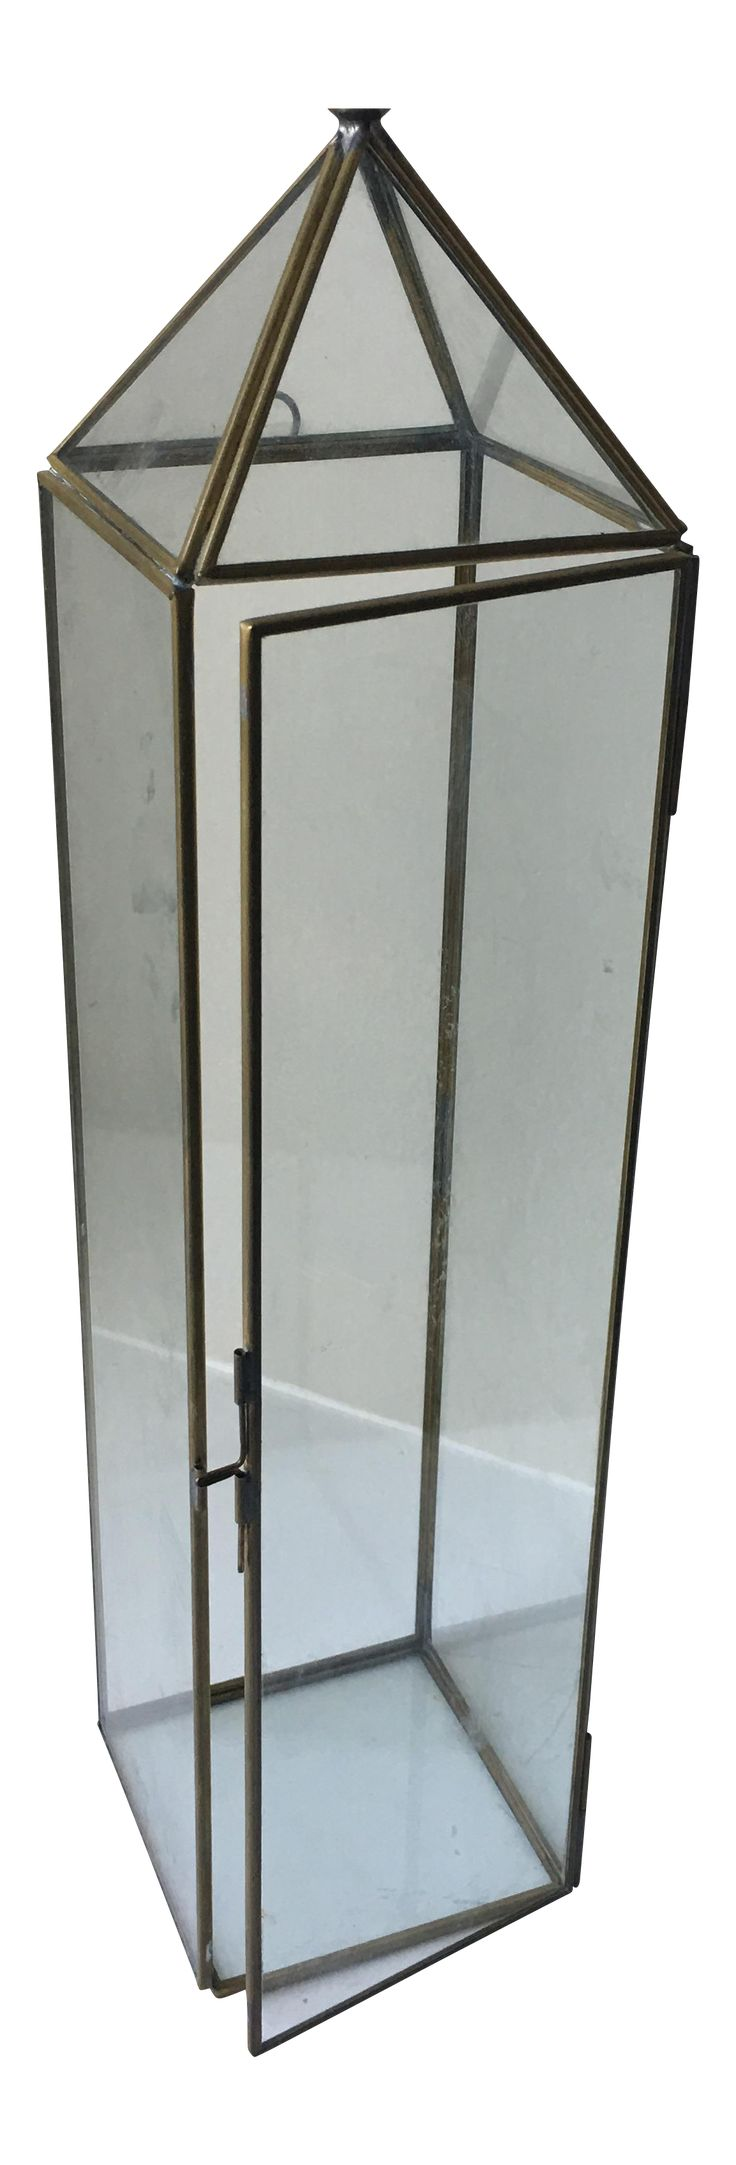 Mid-Century Obelisk Wall Terrarium on Chairish.com